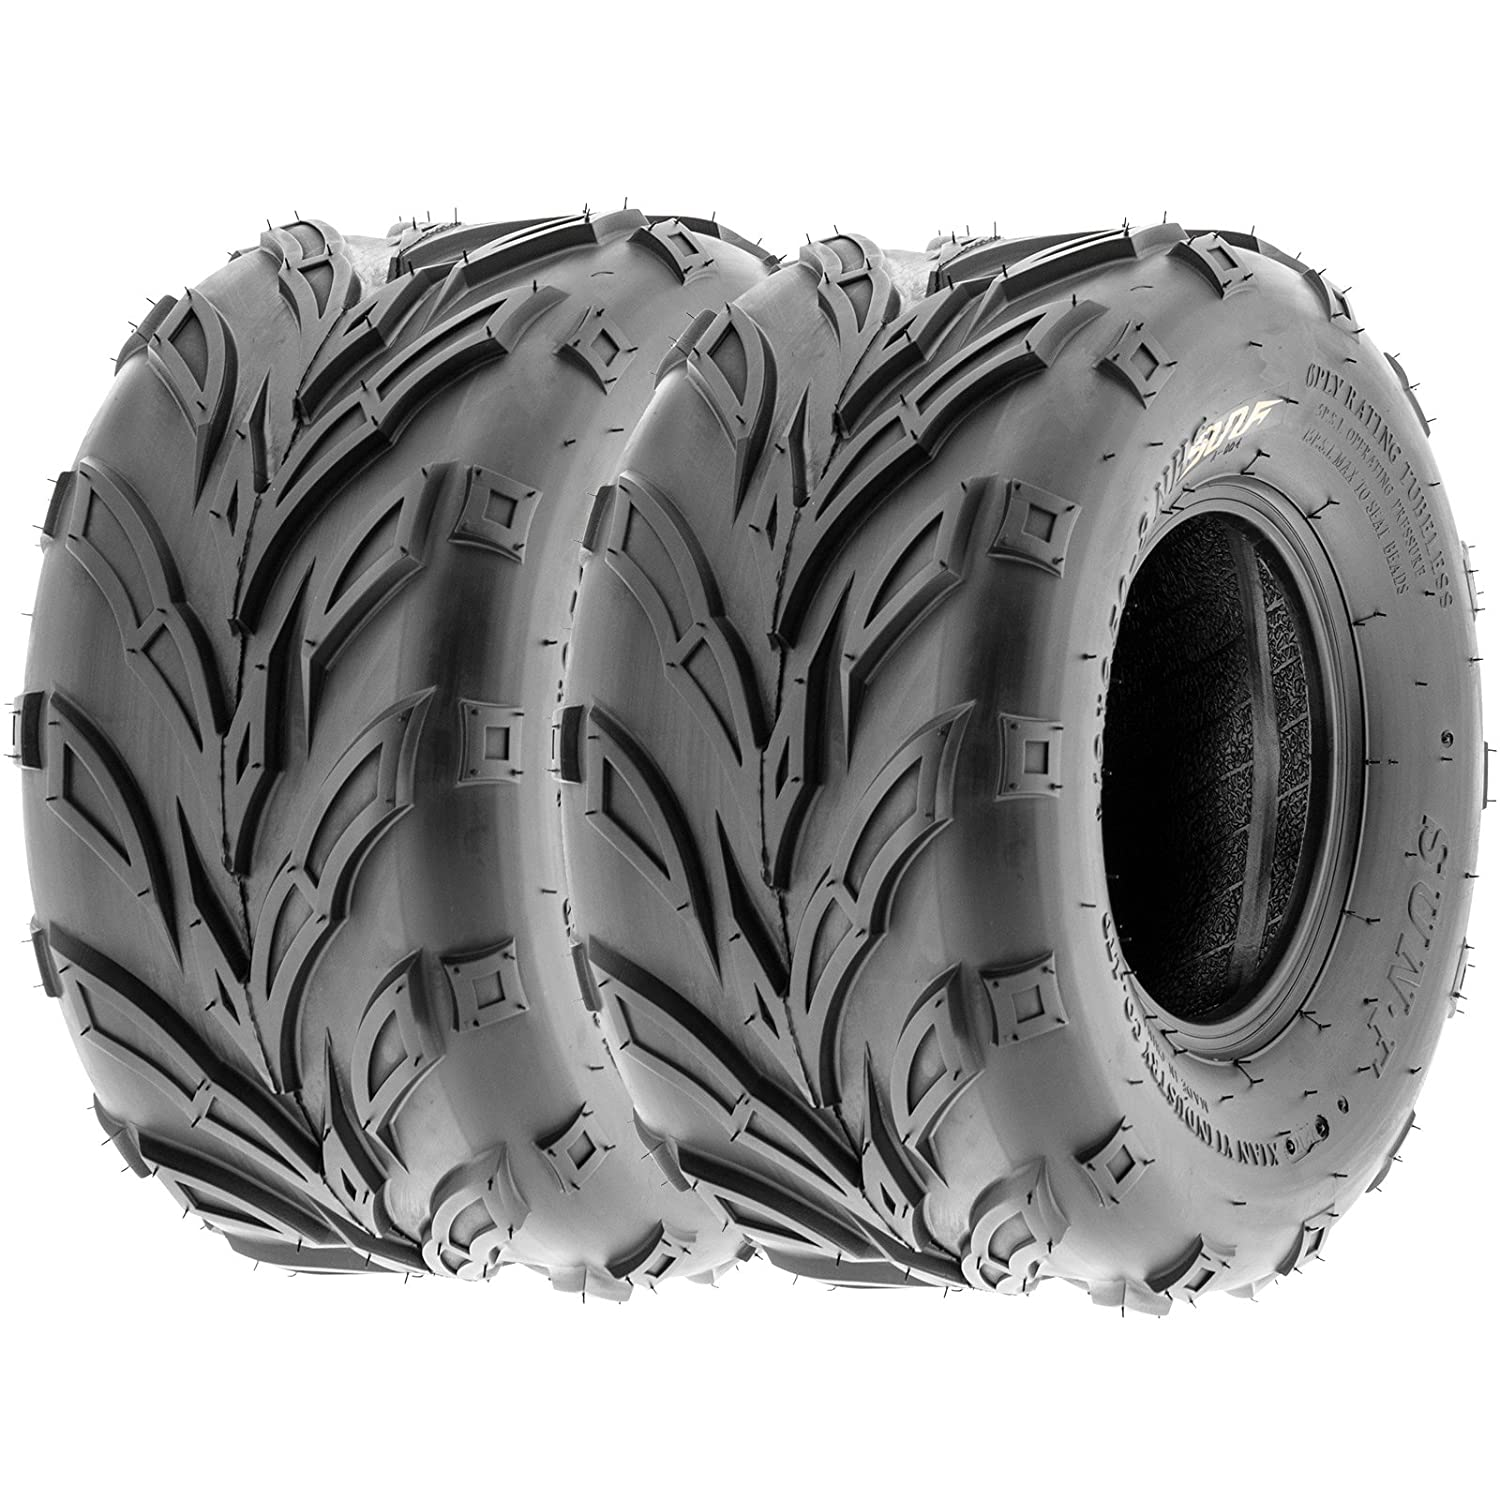 Pair of 2 SunF A004 ATV UTV 19x7-8 AT off-road Tires, Trail & Track, 6 PR, Tubeless